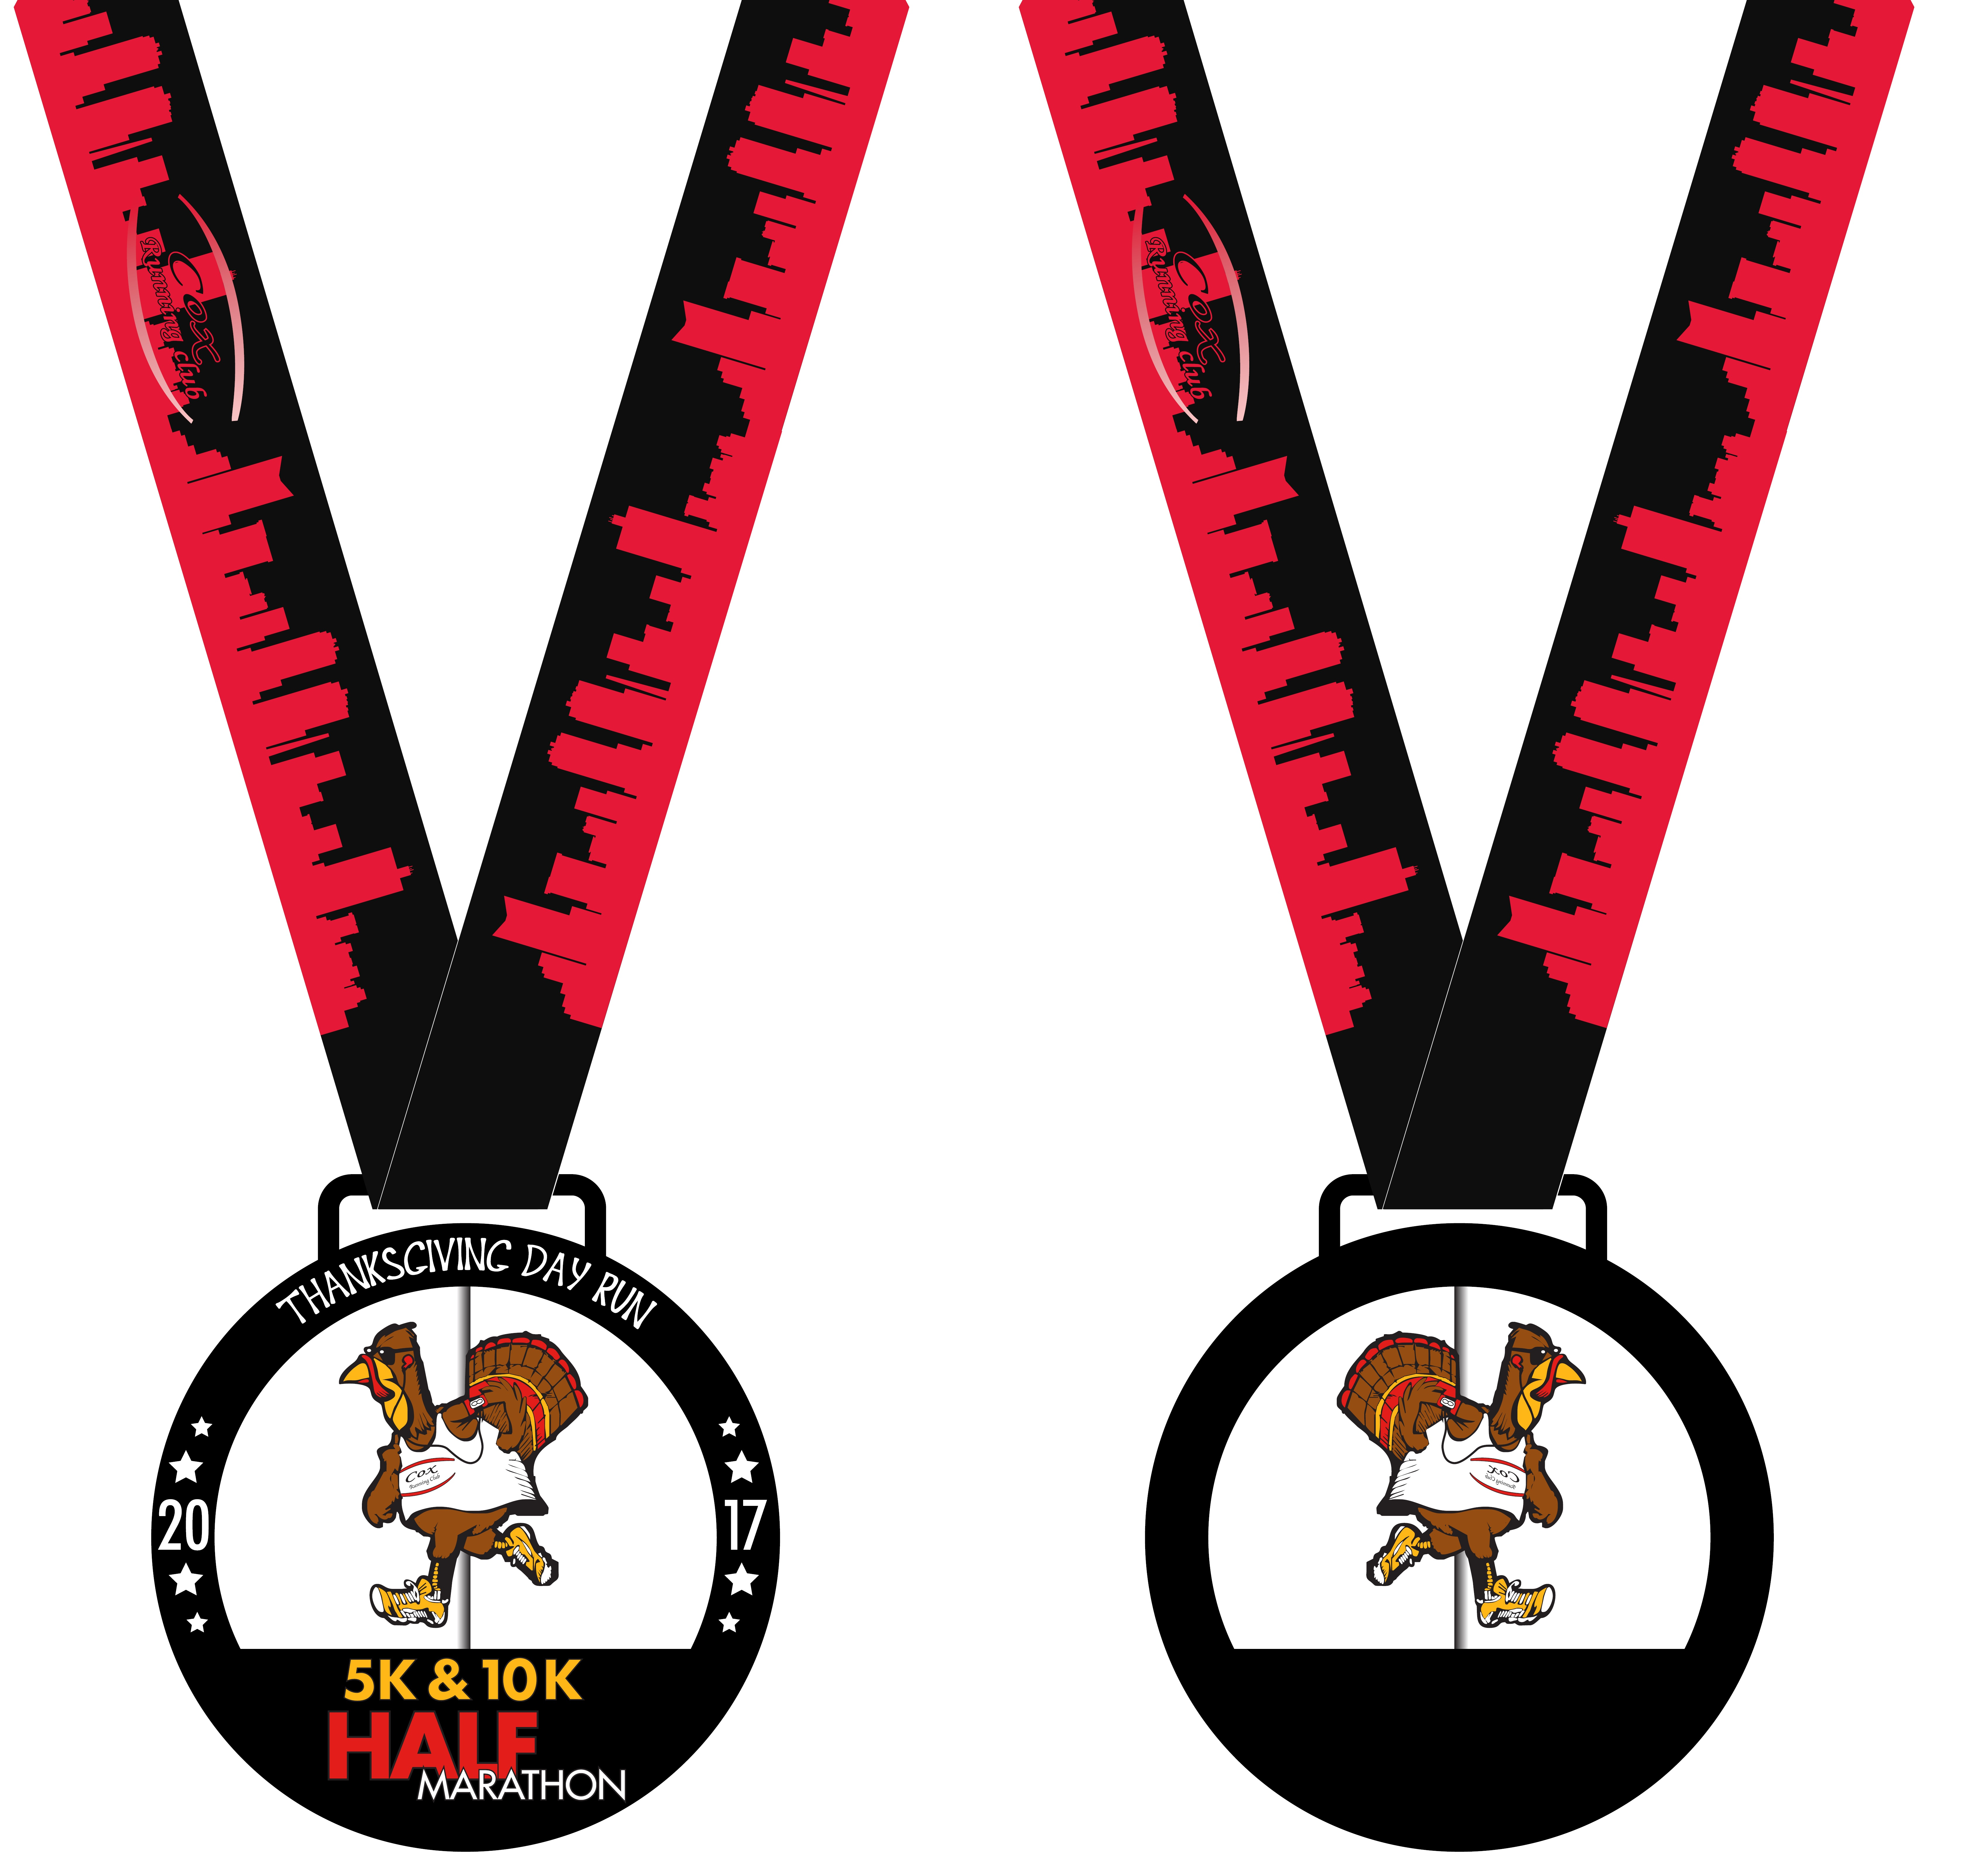 crc thanksgiving day run results 2018